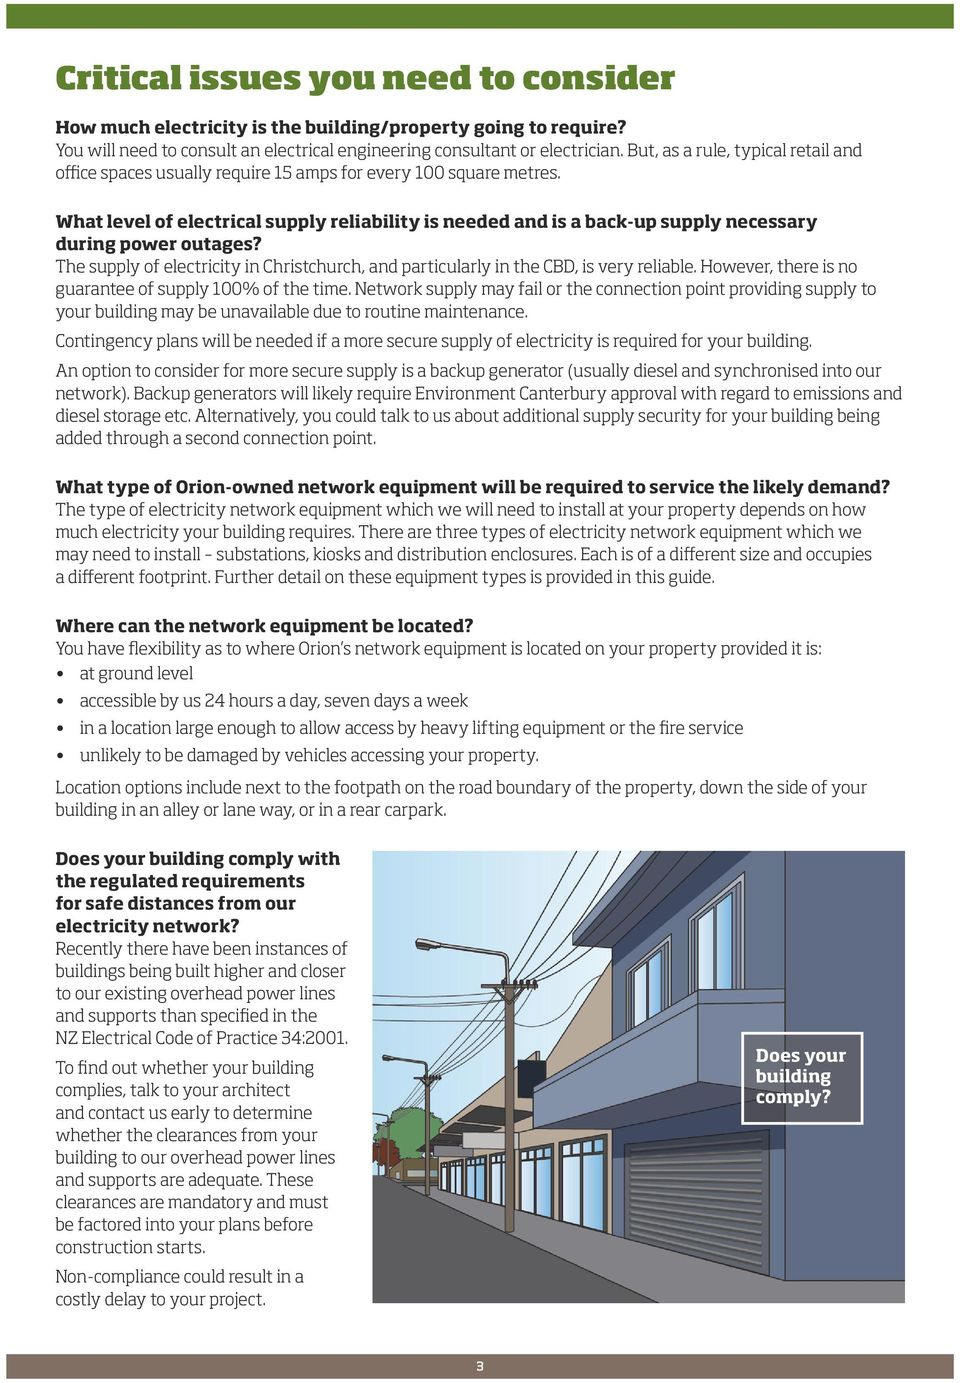 What level of electrical supply reliability is needed and is a back-up supply necessary during power outages? The supply of electricity in Christchurch, and particularly in the CBD, is very reliable.